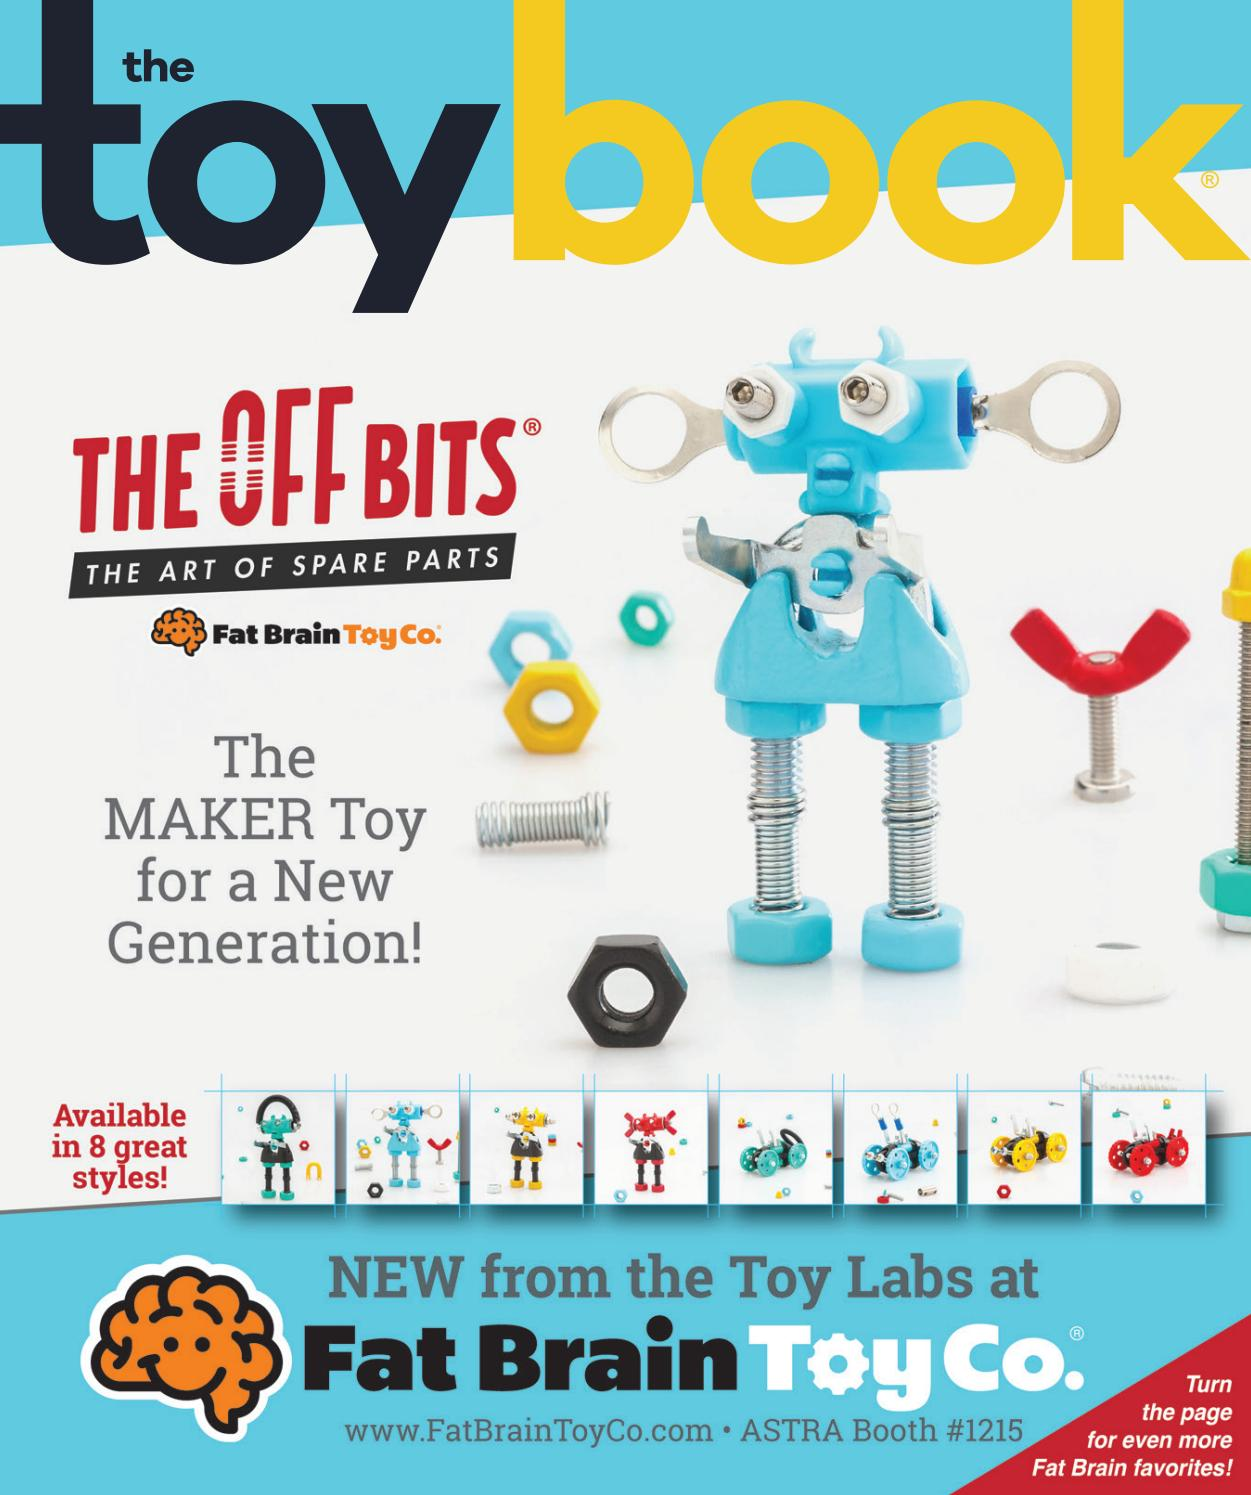 0aff97f9c May/June 2017 by The Toy Book - issuu